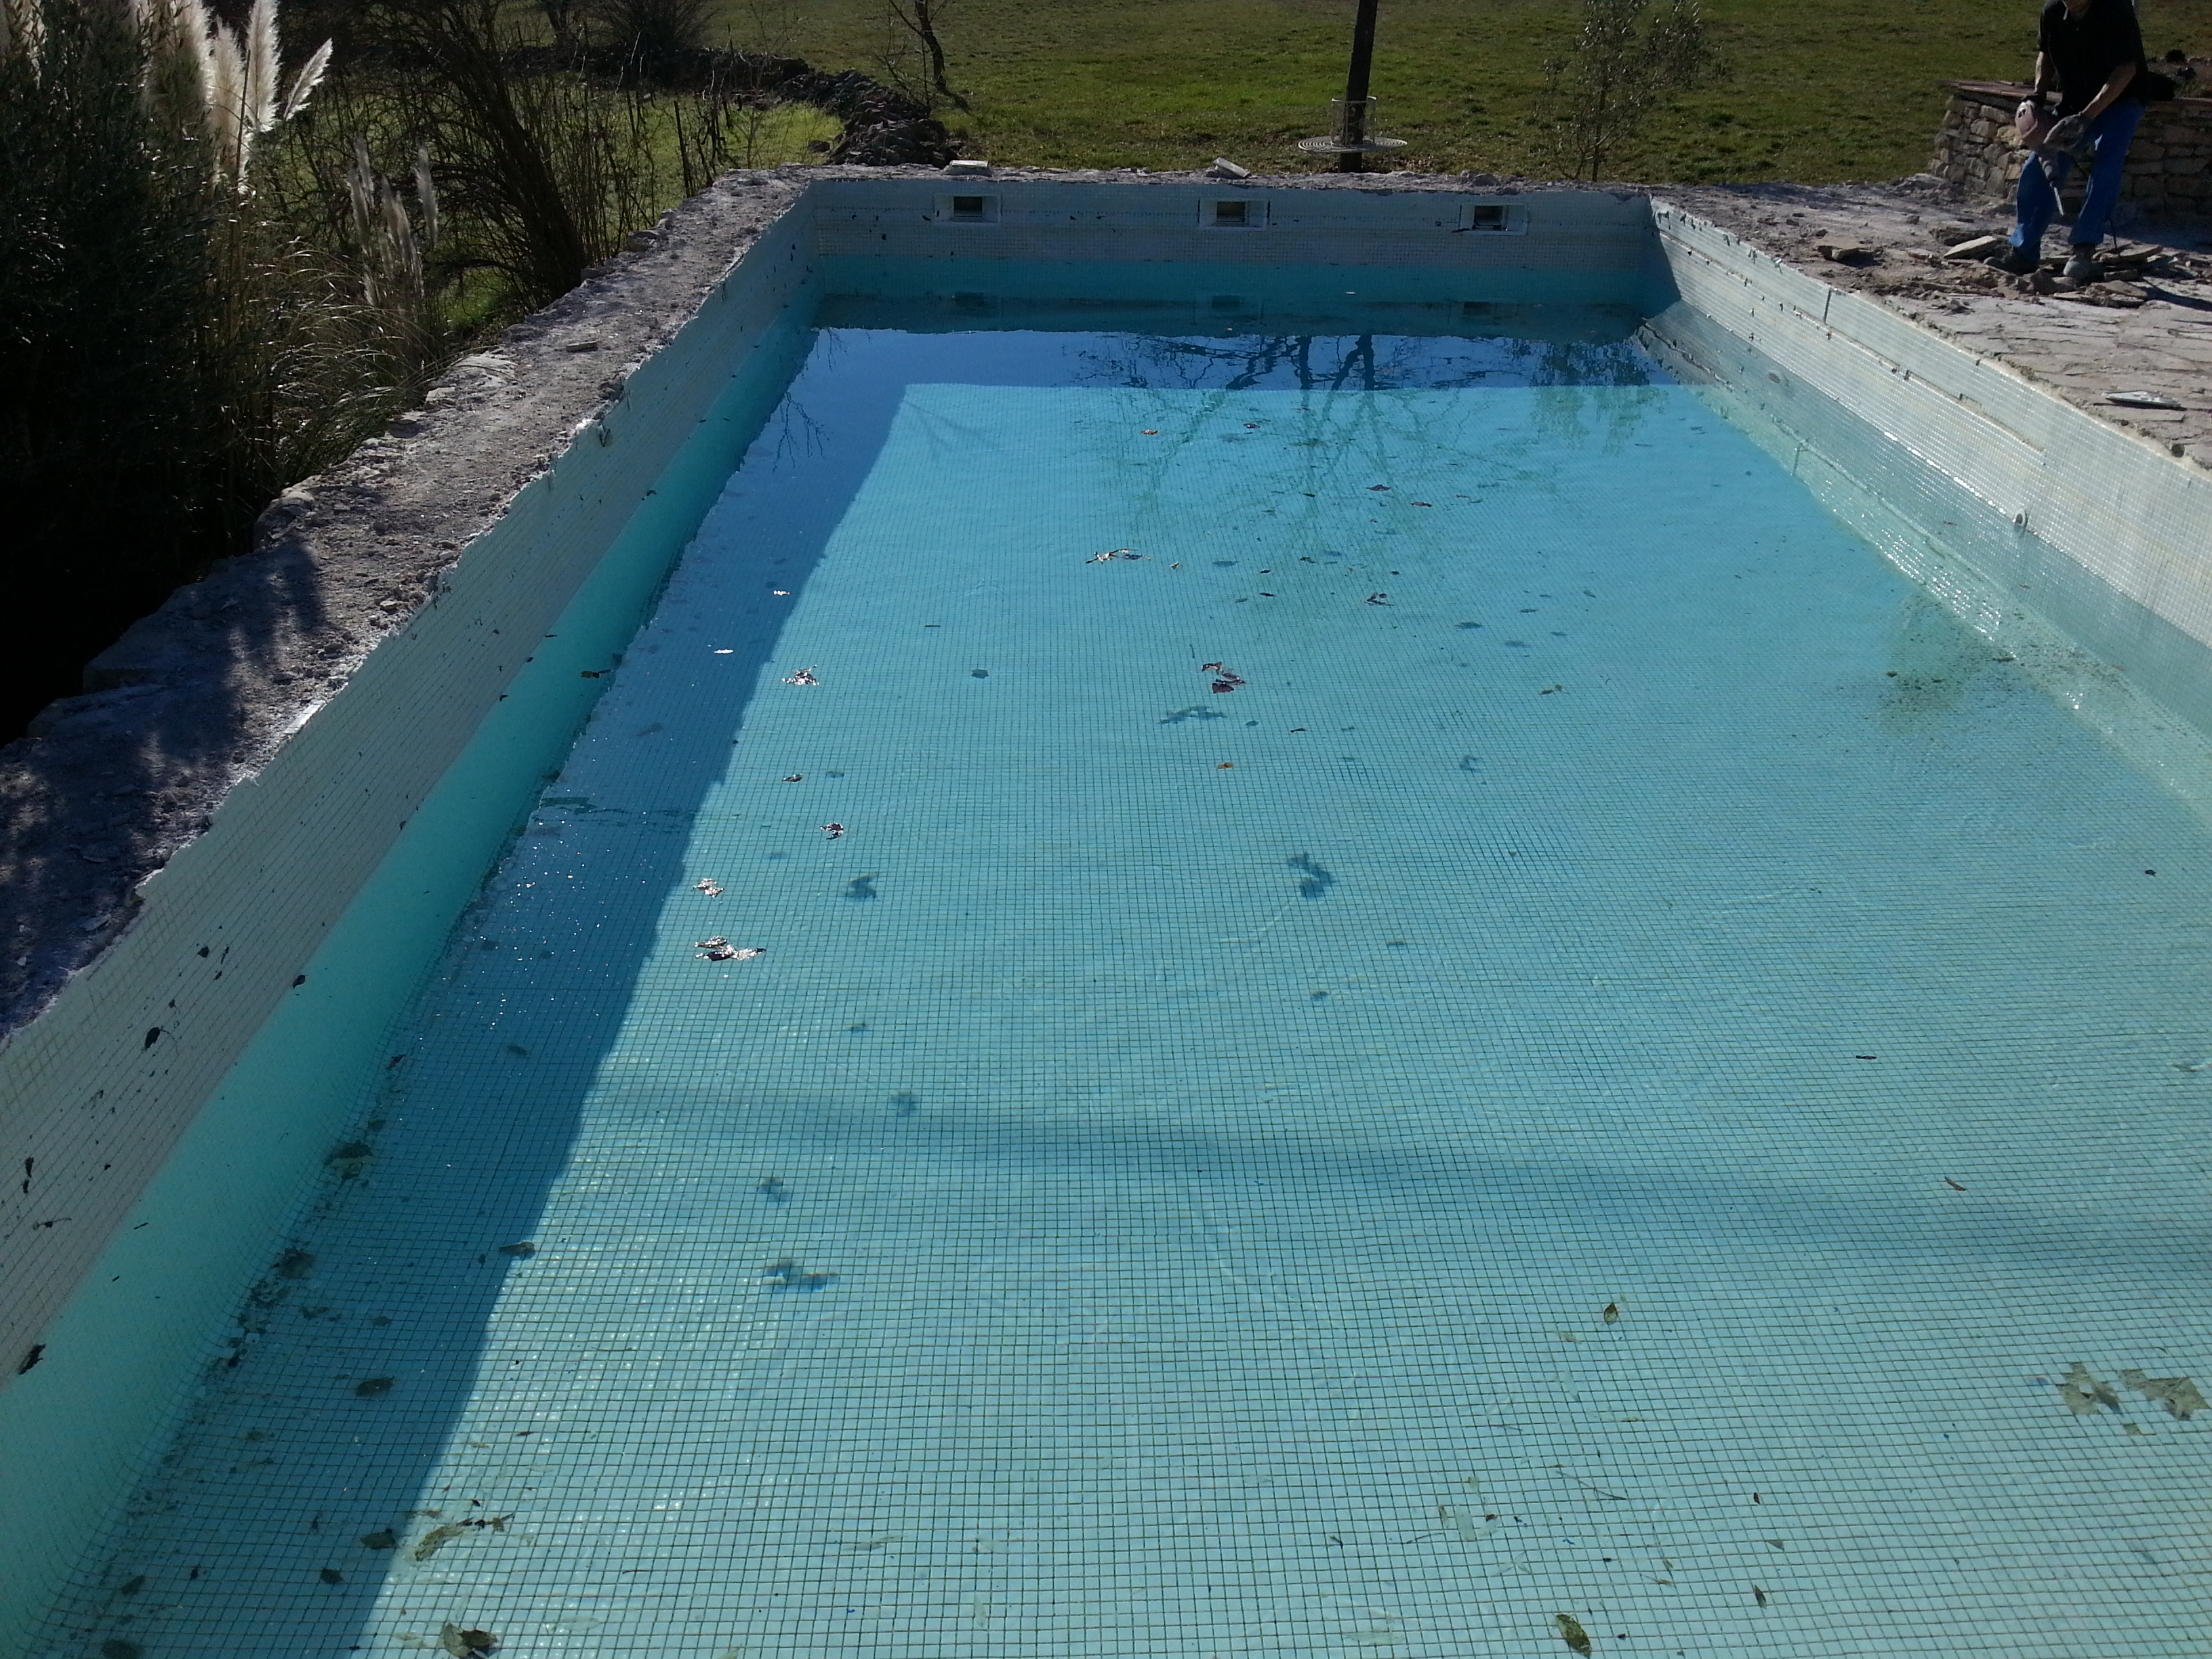 Installation piscine hors sol conceptions de maison for Installation piscine hors sol